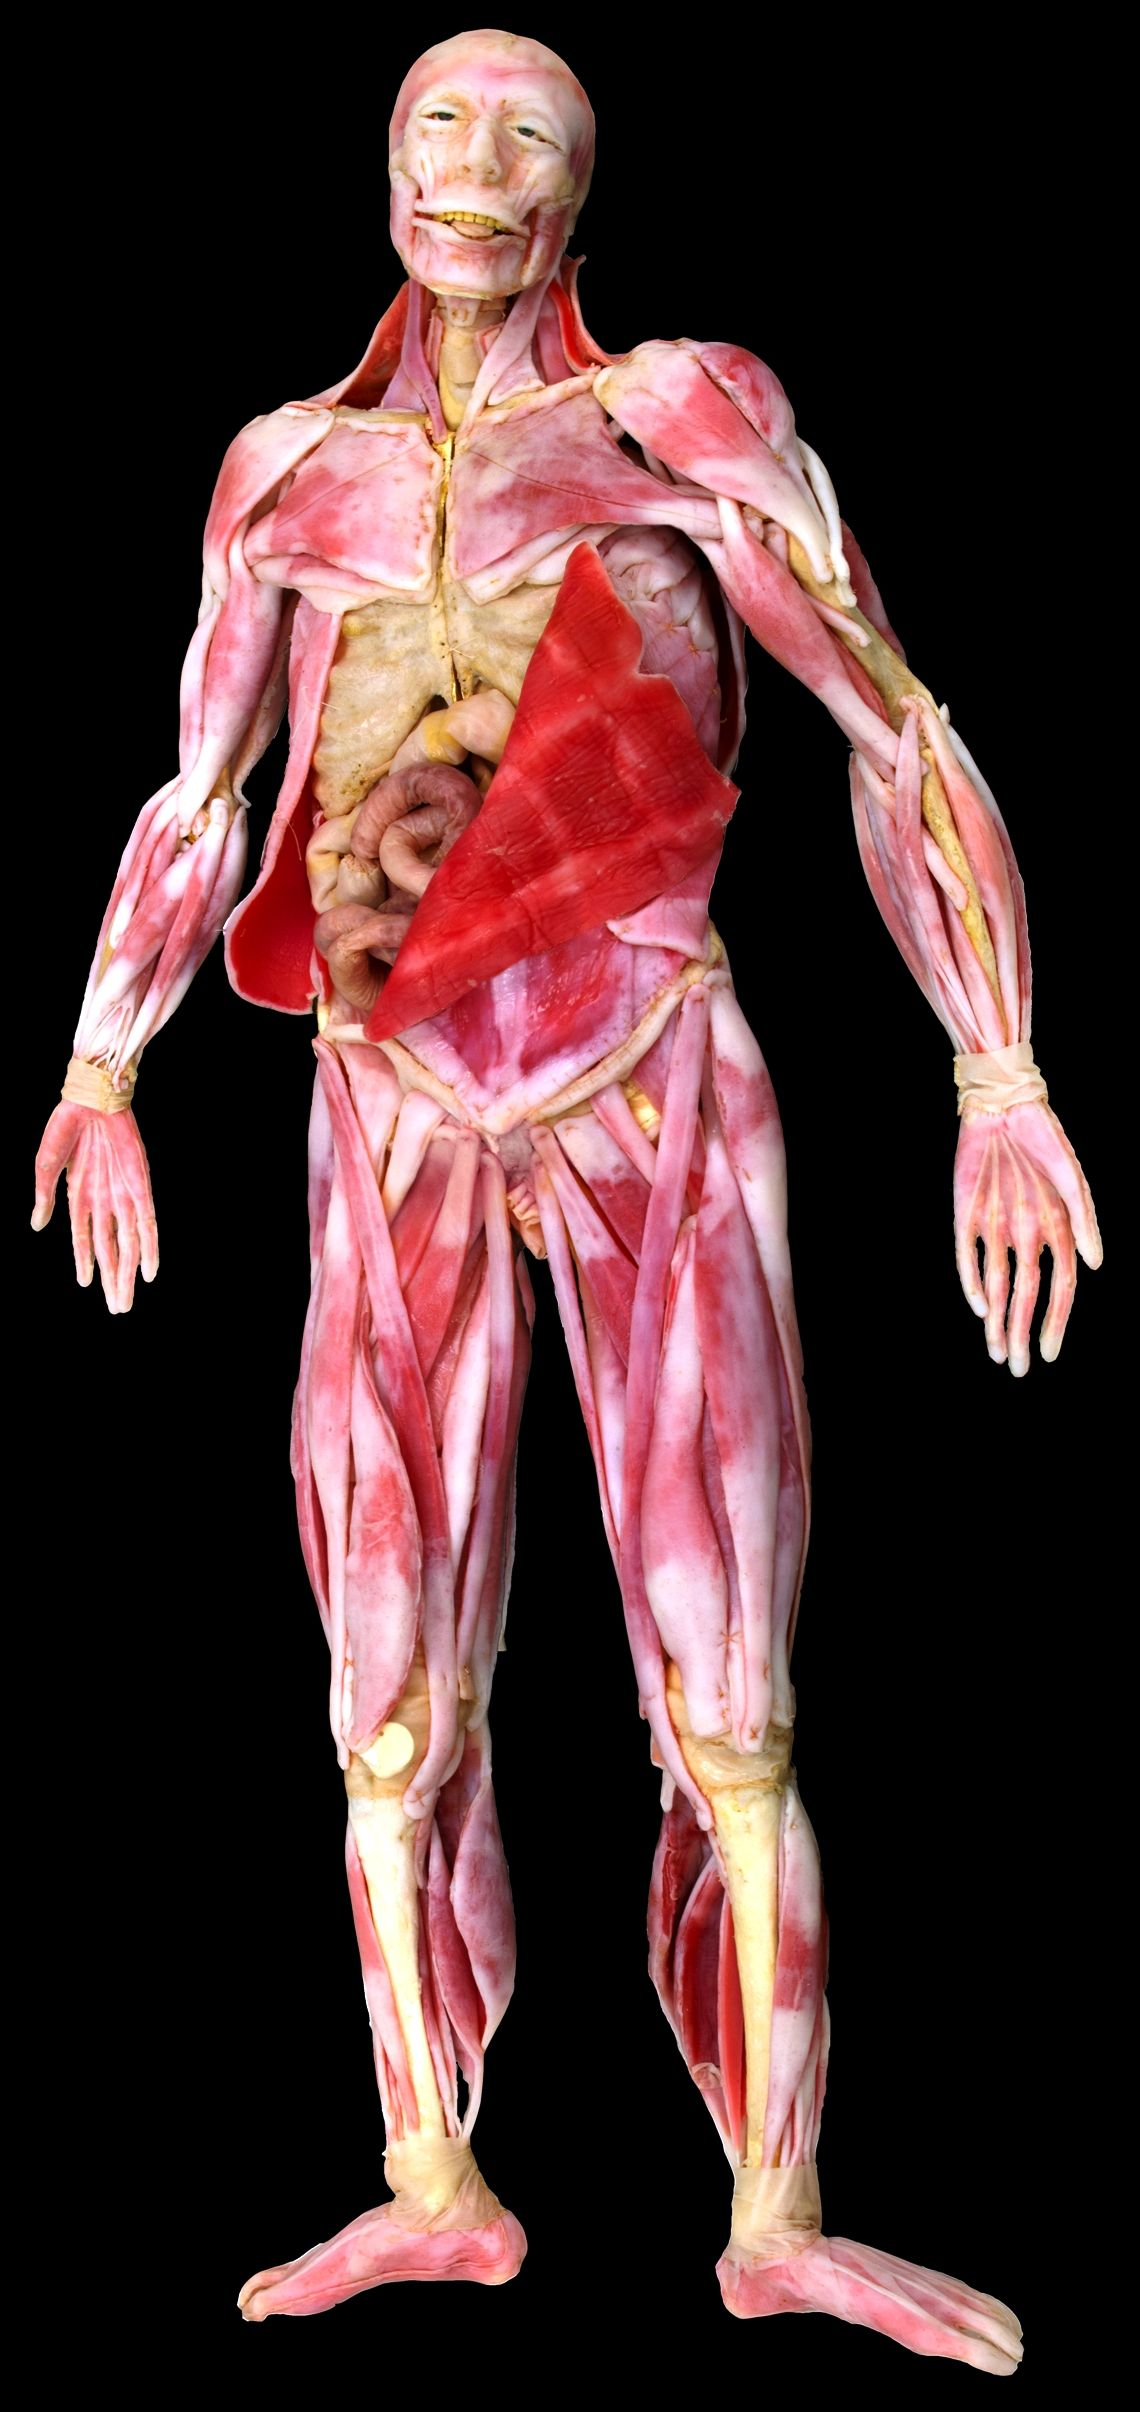 Muscular Full Body Model Includes All Of The Major